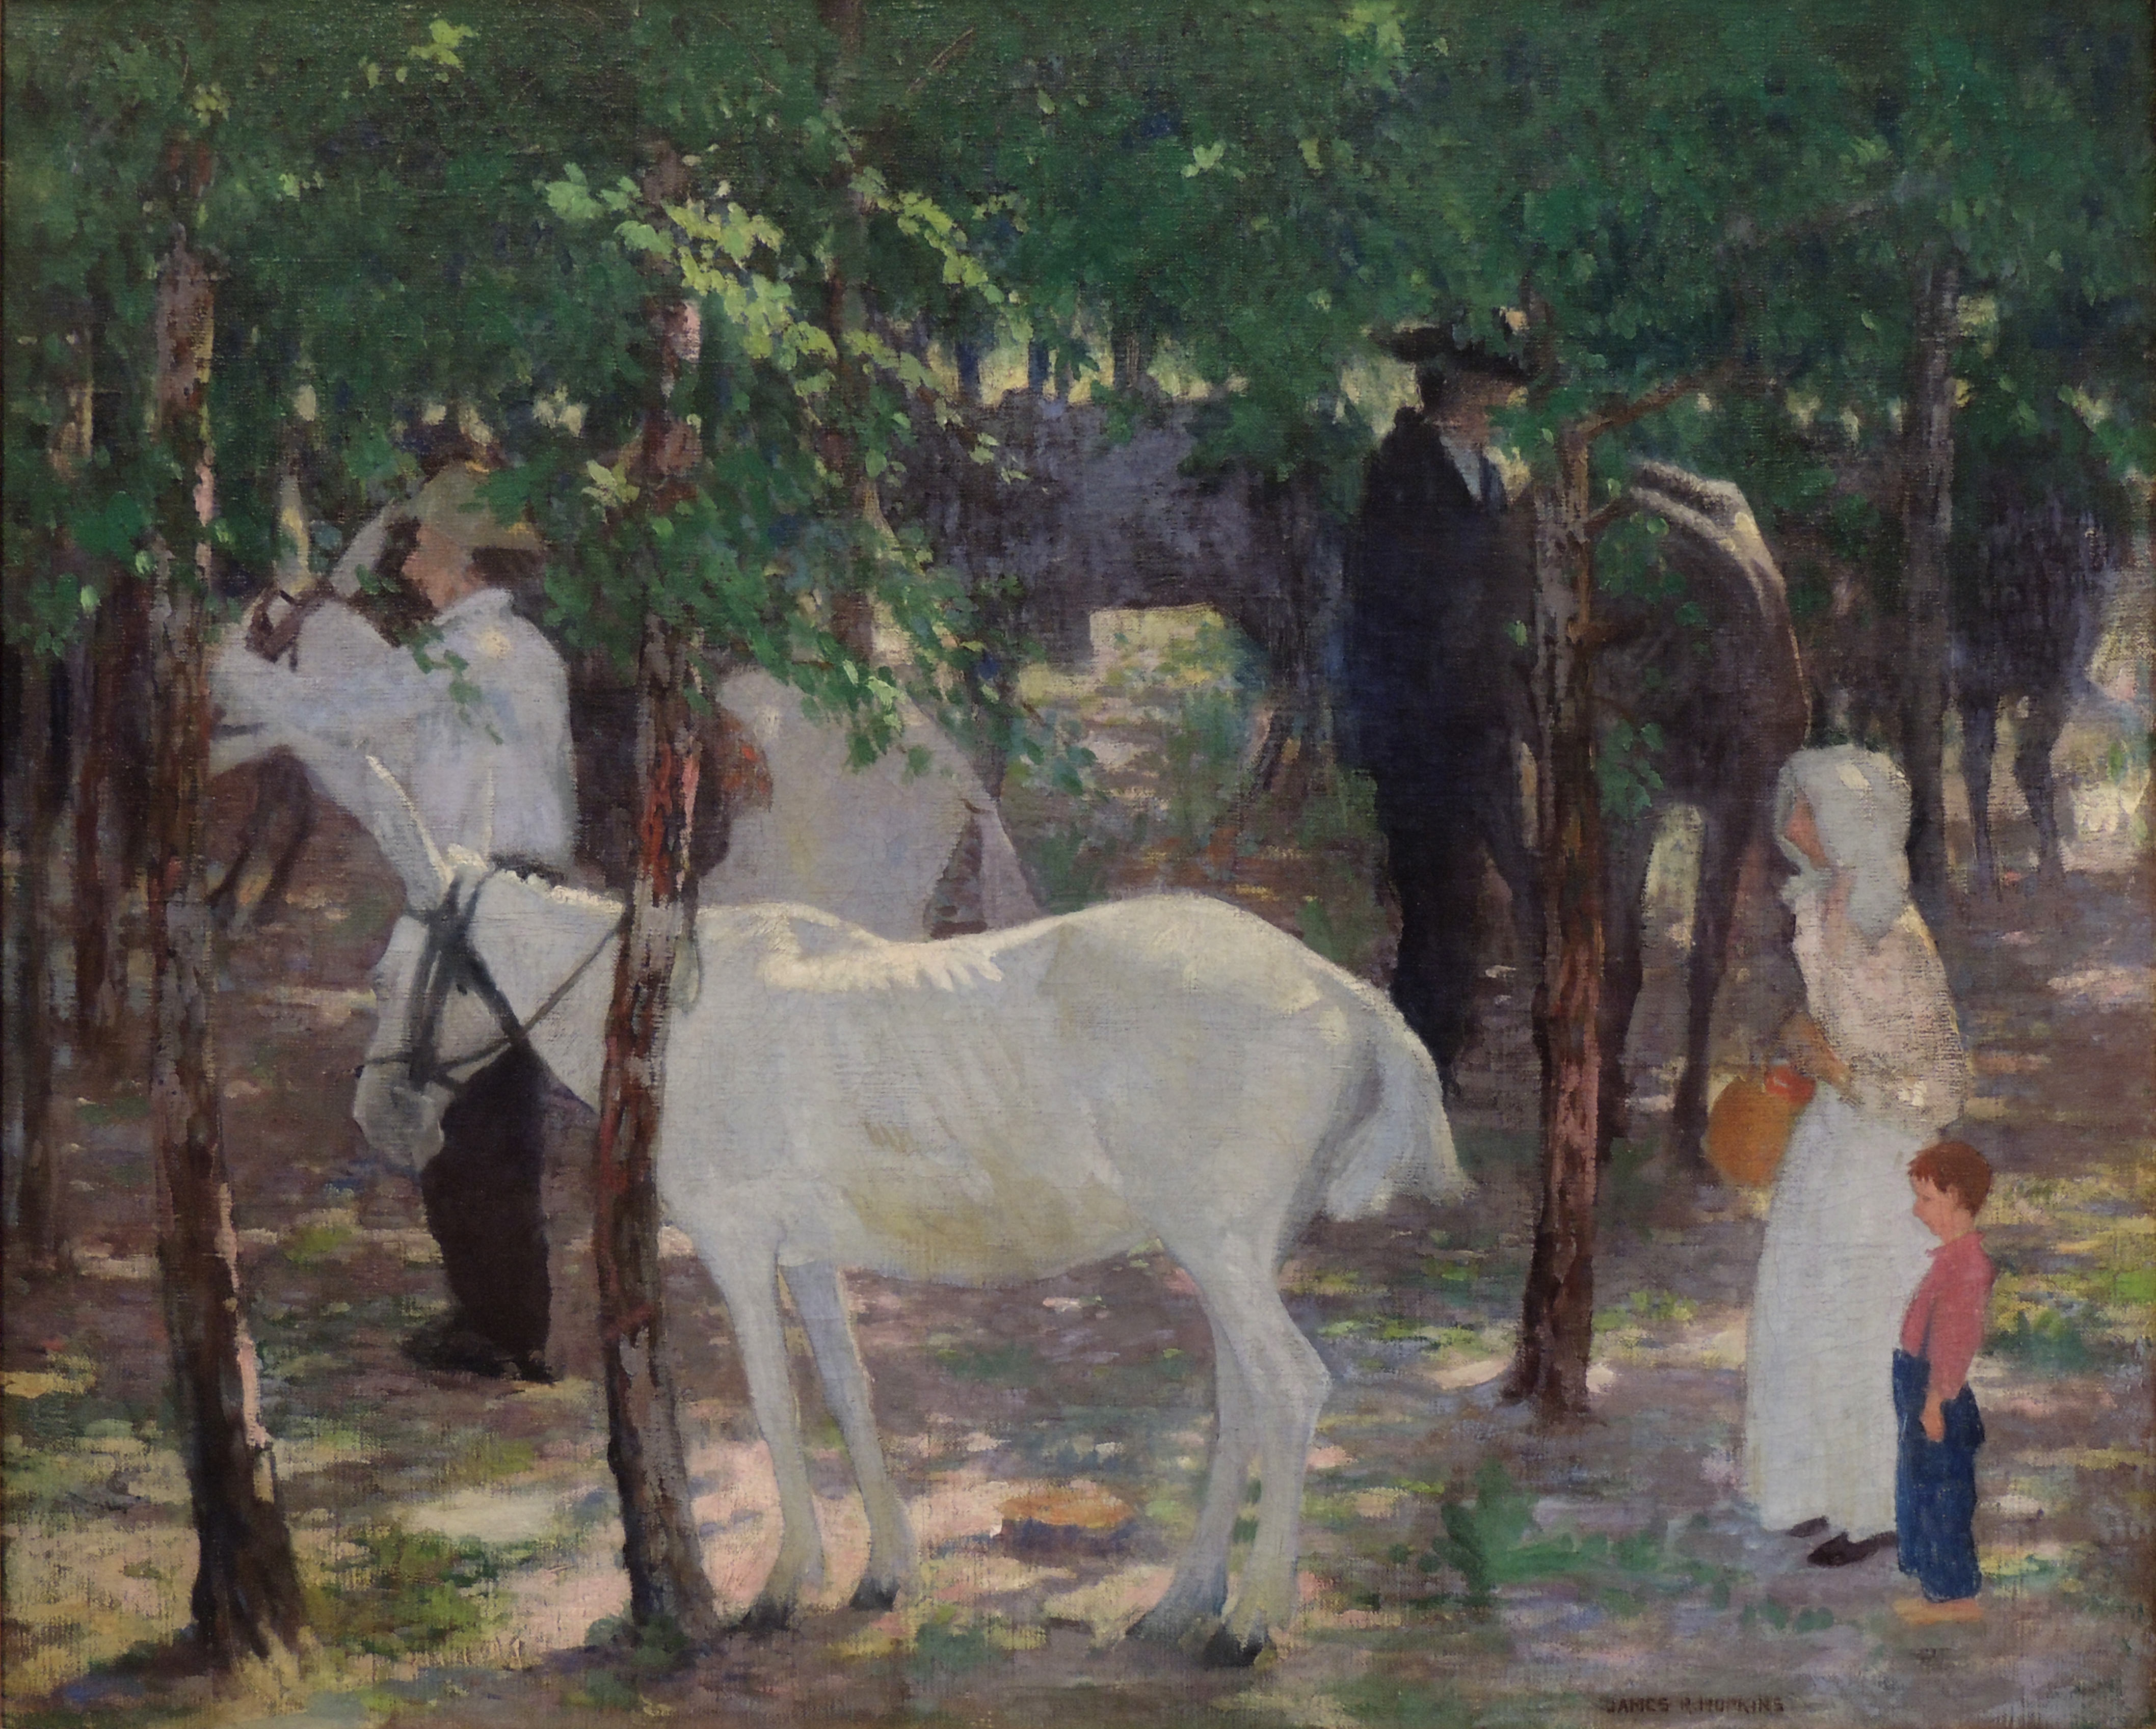 James R. Hopkins | THE HITCHING GROVE | oil on canvas | 26 x 32"